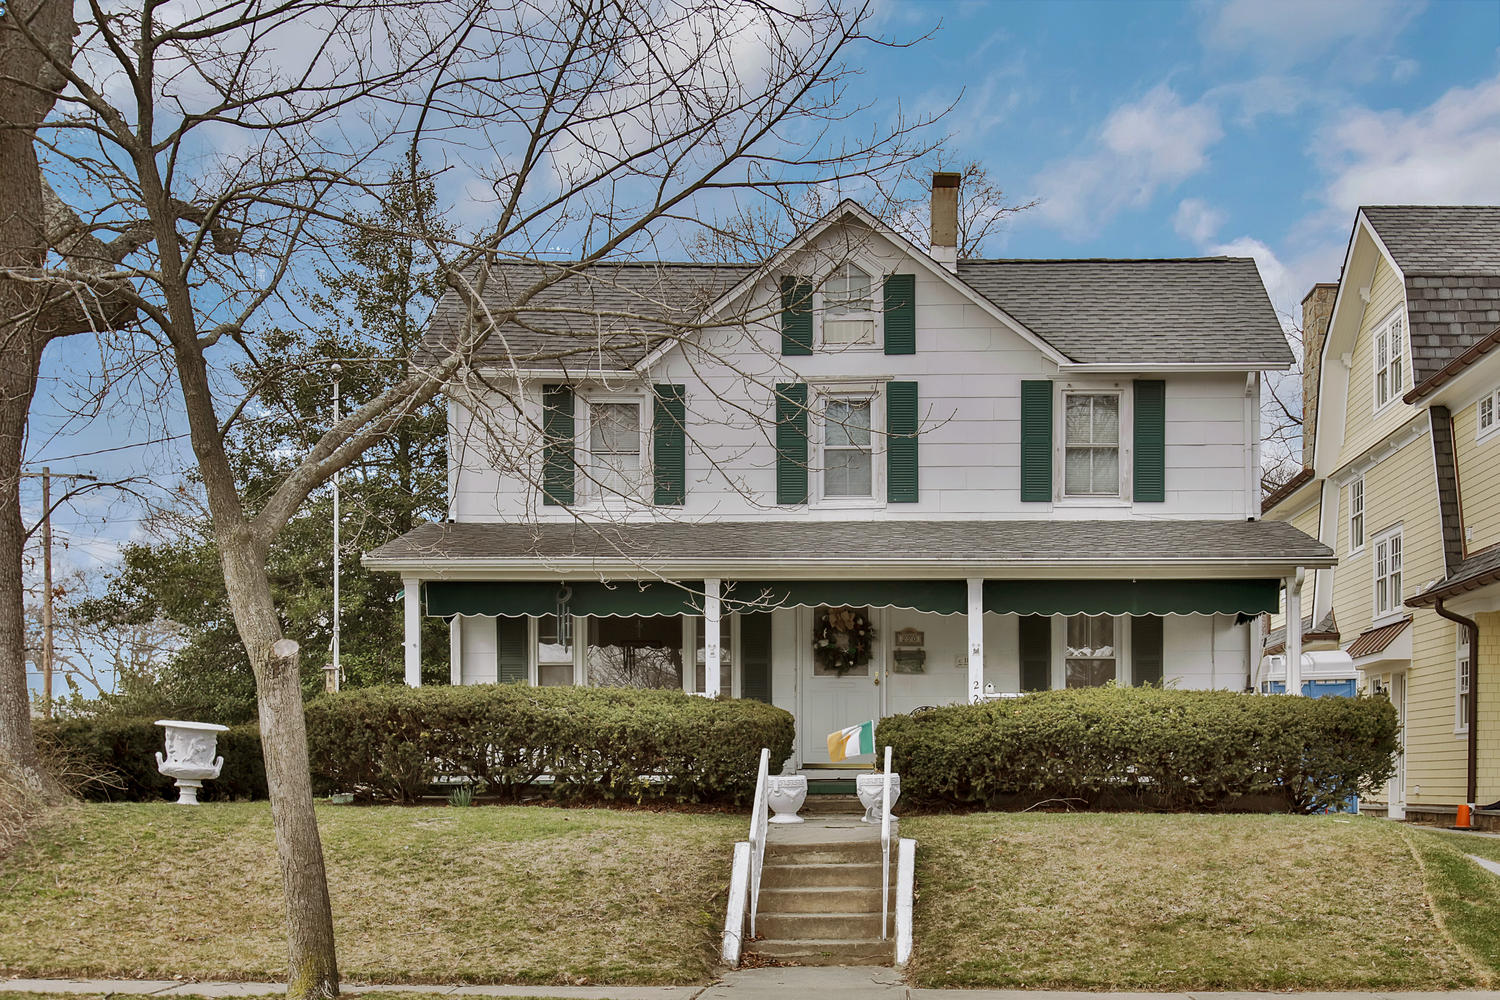 Single Family Home for Sale at Charming 3 Bedroom in Spring Lake 220 Worthington Ave Spring Lake, New Jersey 07762 United States